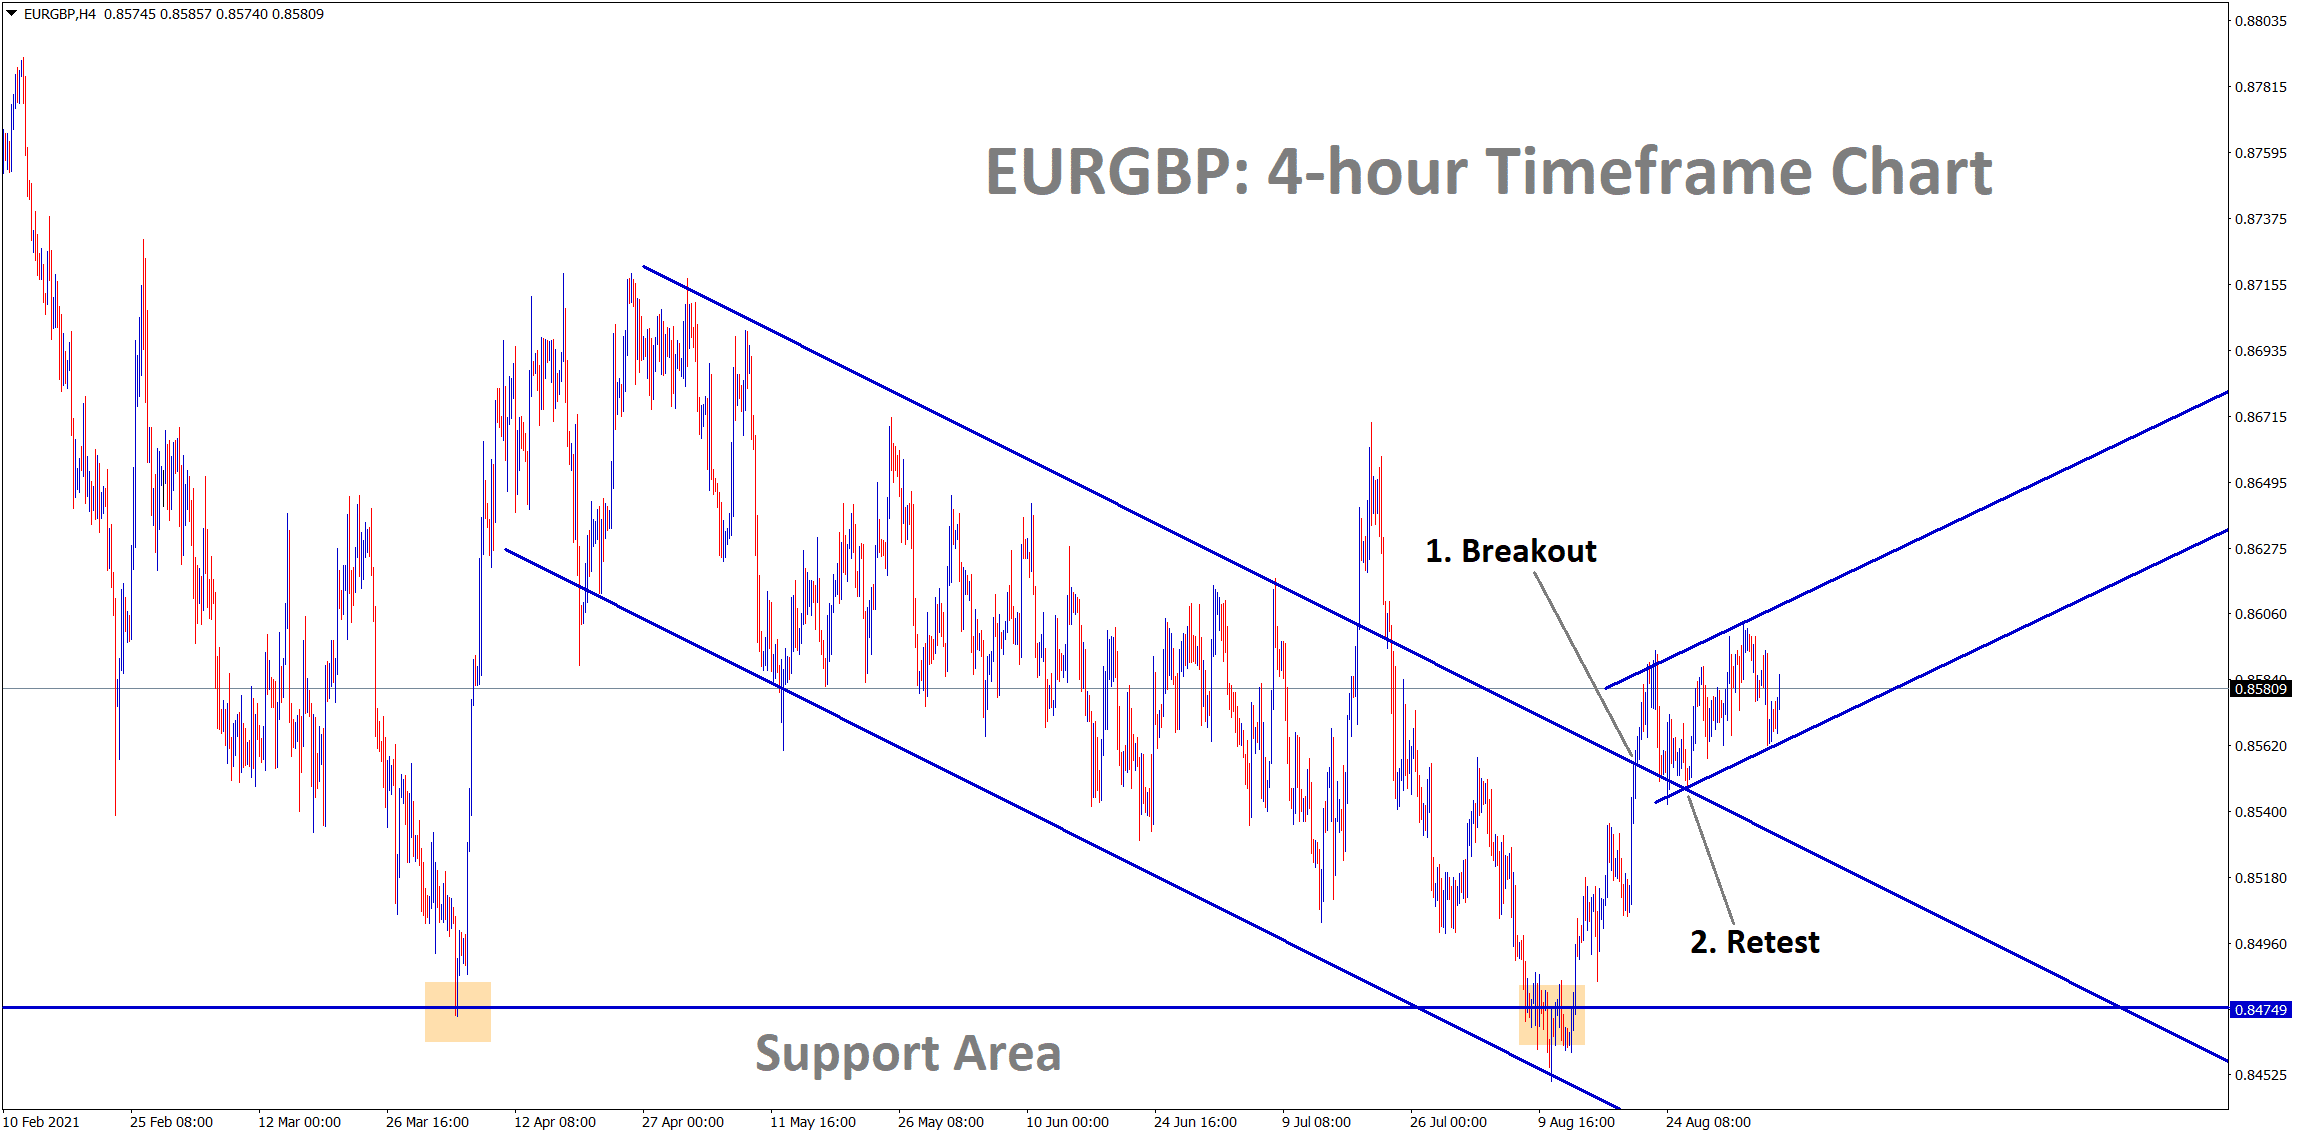 EURGBP is bouncing back after retesting the broken descending channel in the 4 hour timeframe chart.